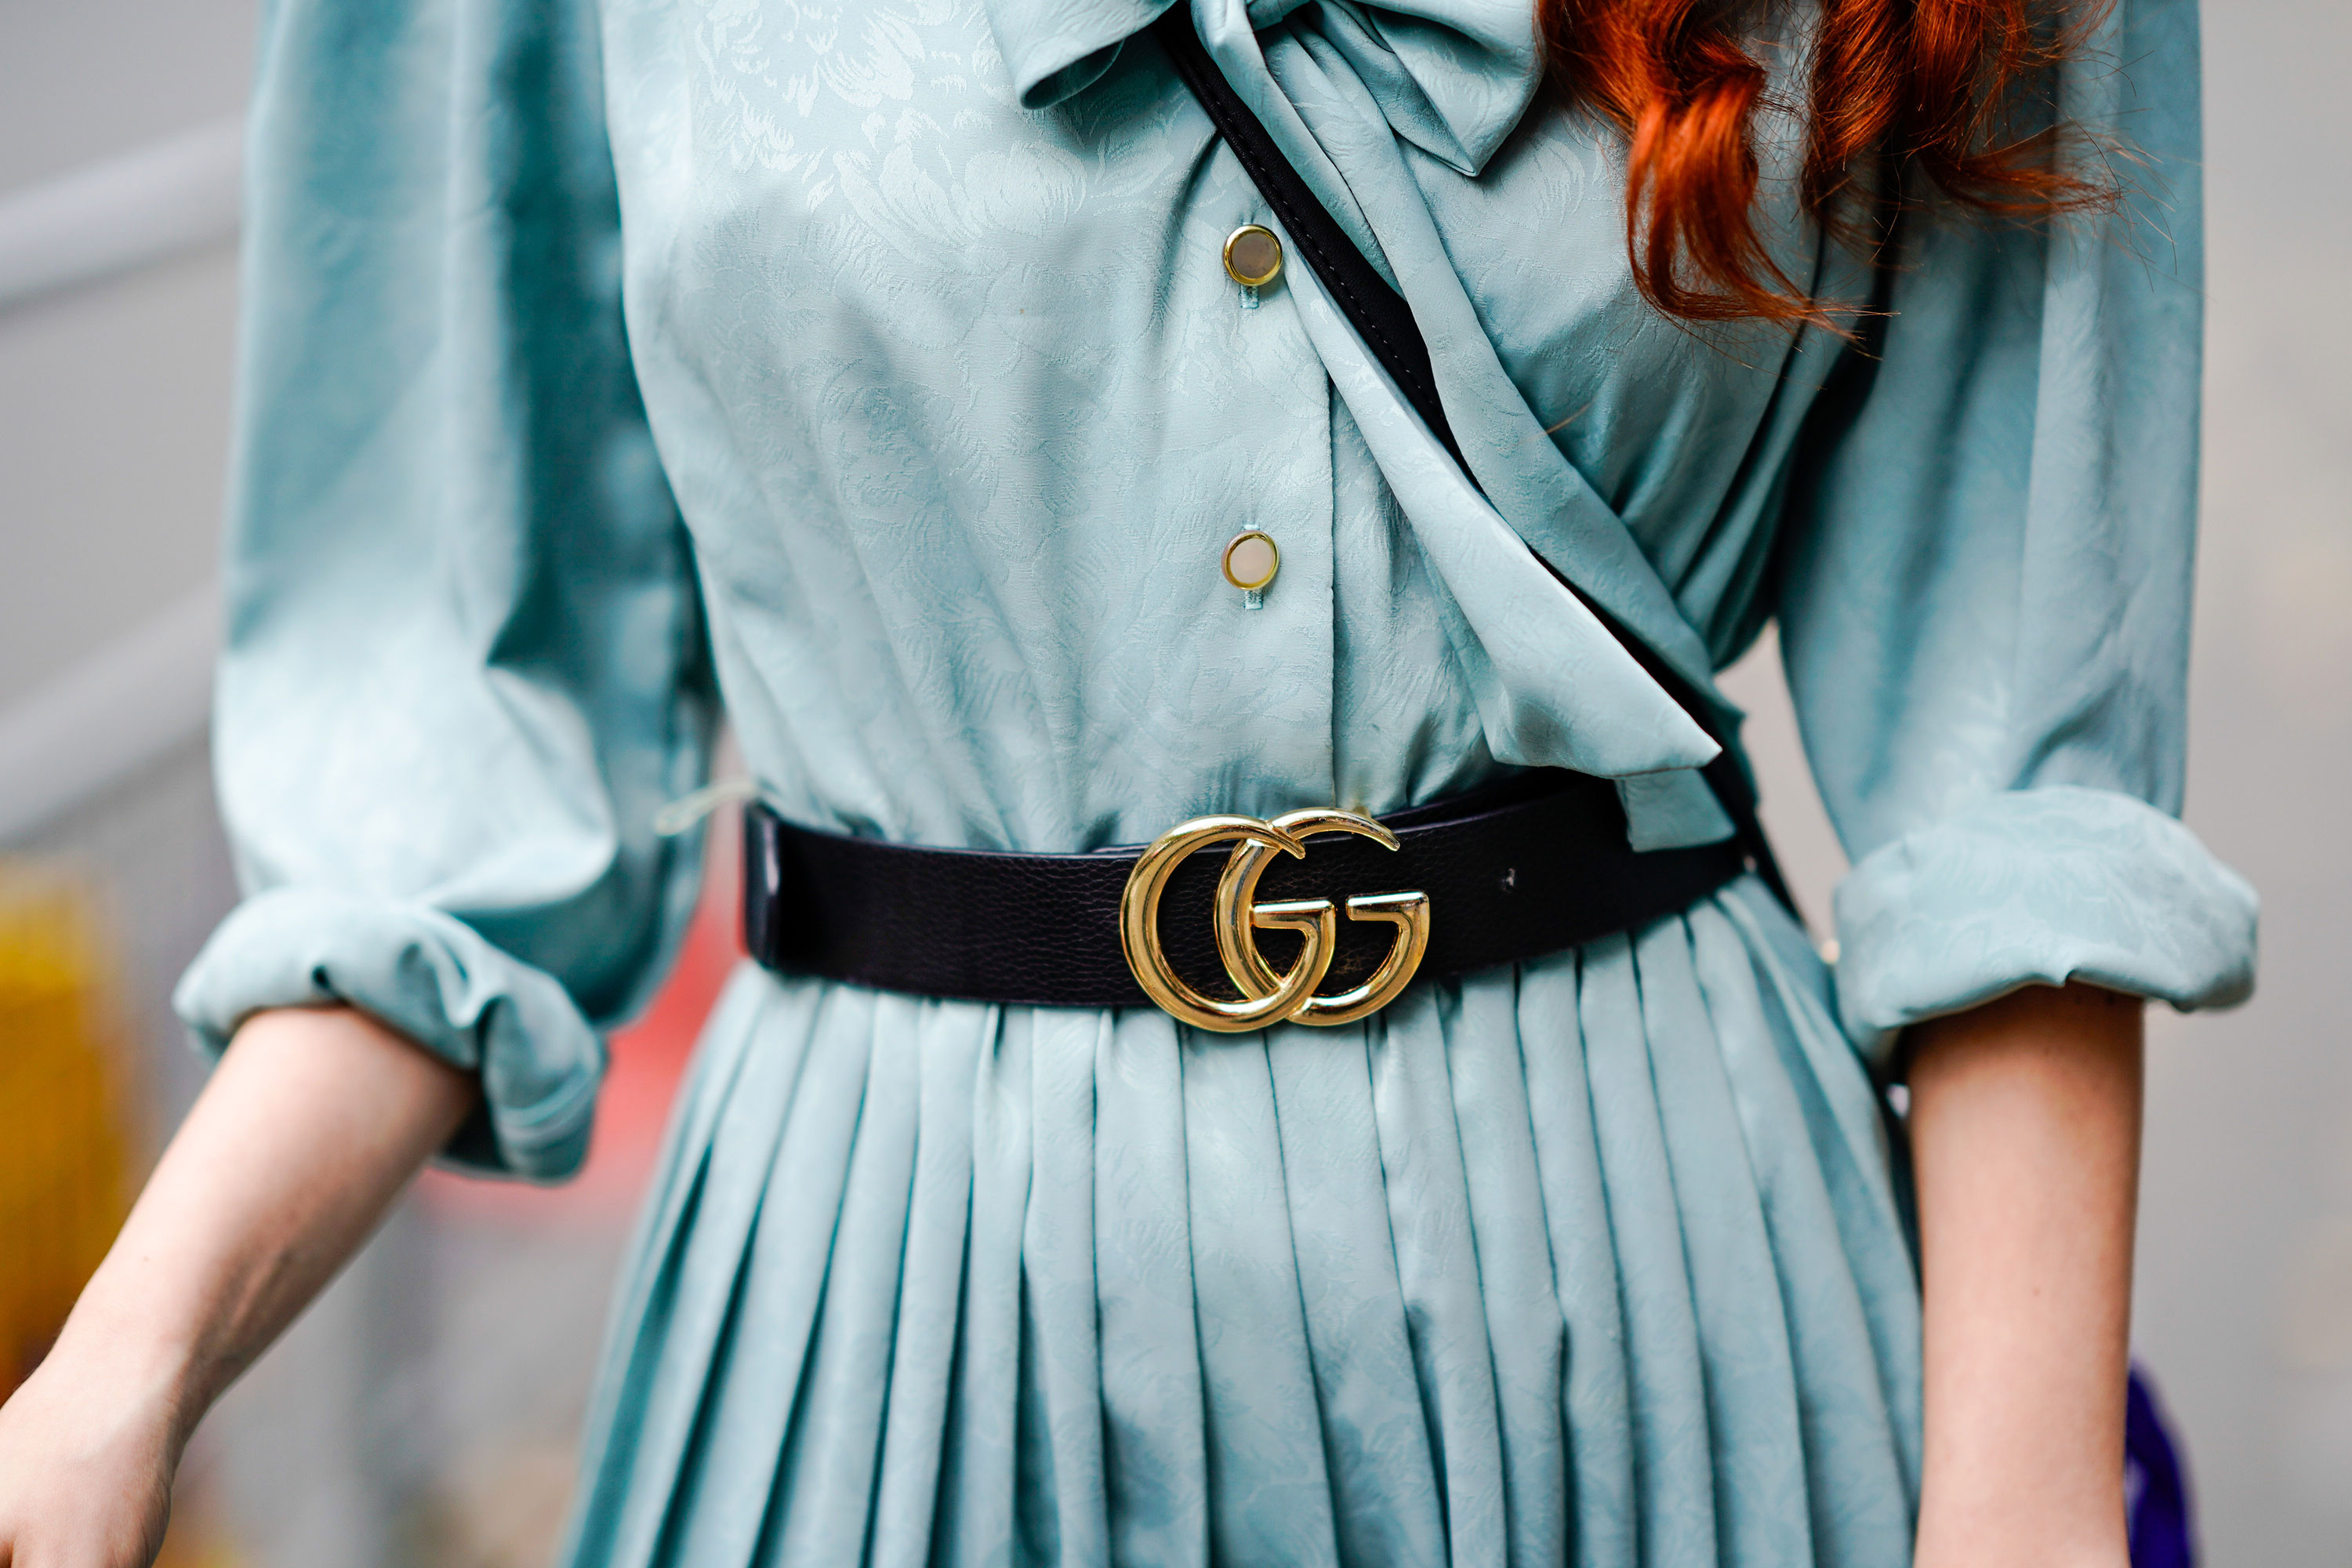 dda55a7d2 Gucci Belt Mania 2018: The Year the Double G's Took Over | InStyle.com